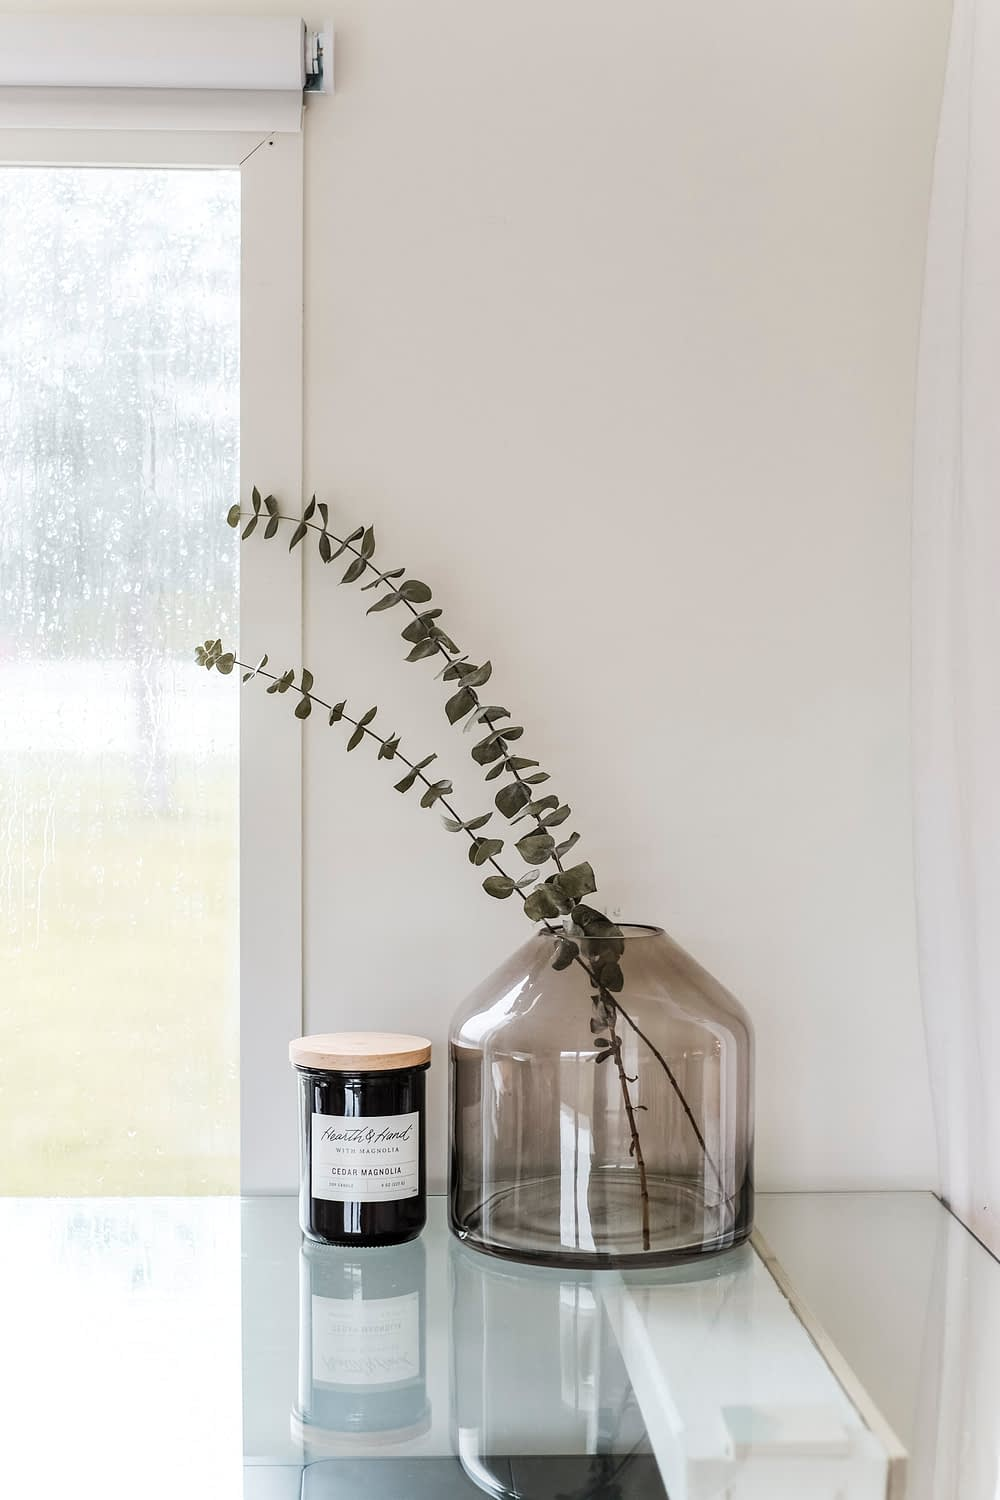 A glass vase with dried eucalyptus next to a candle on top of a glass desktop